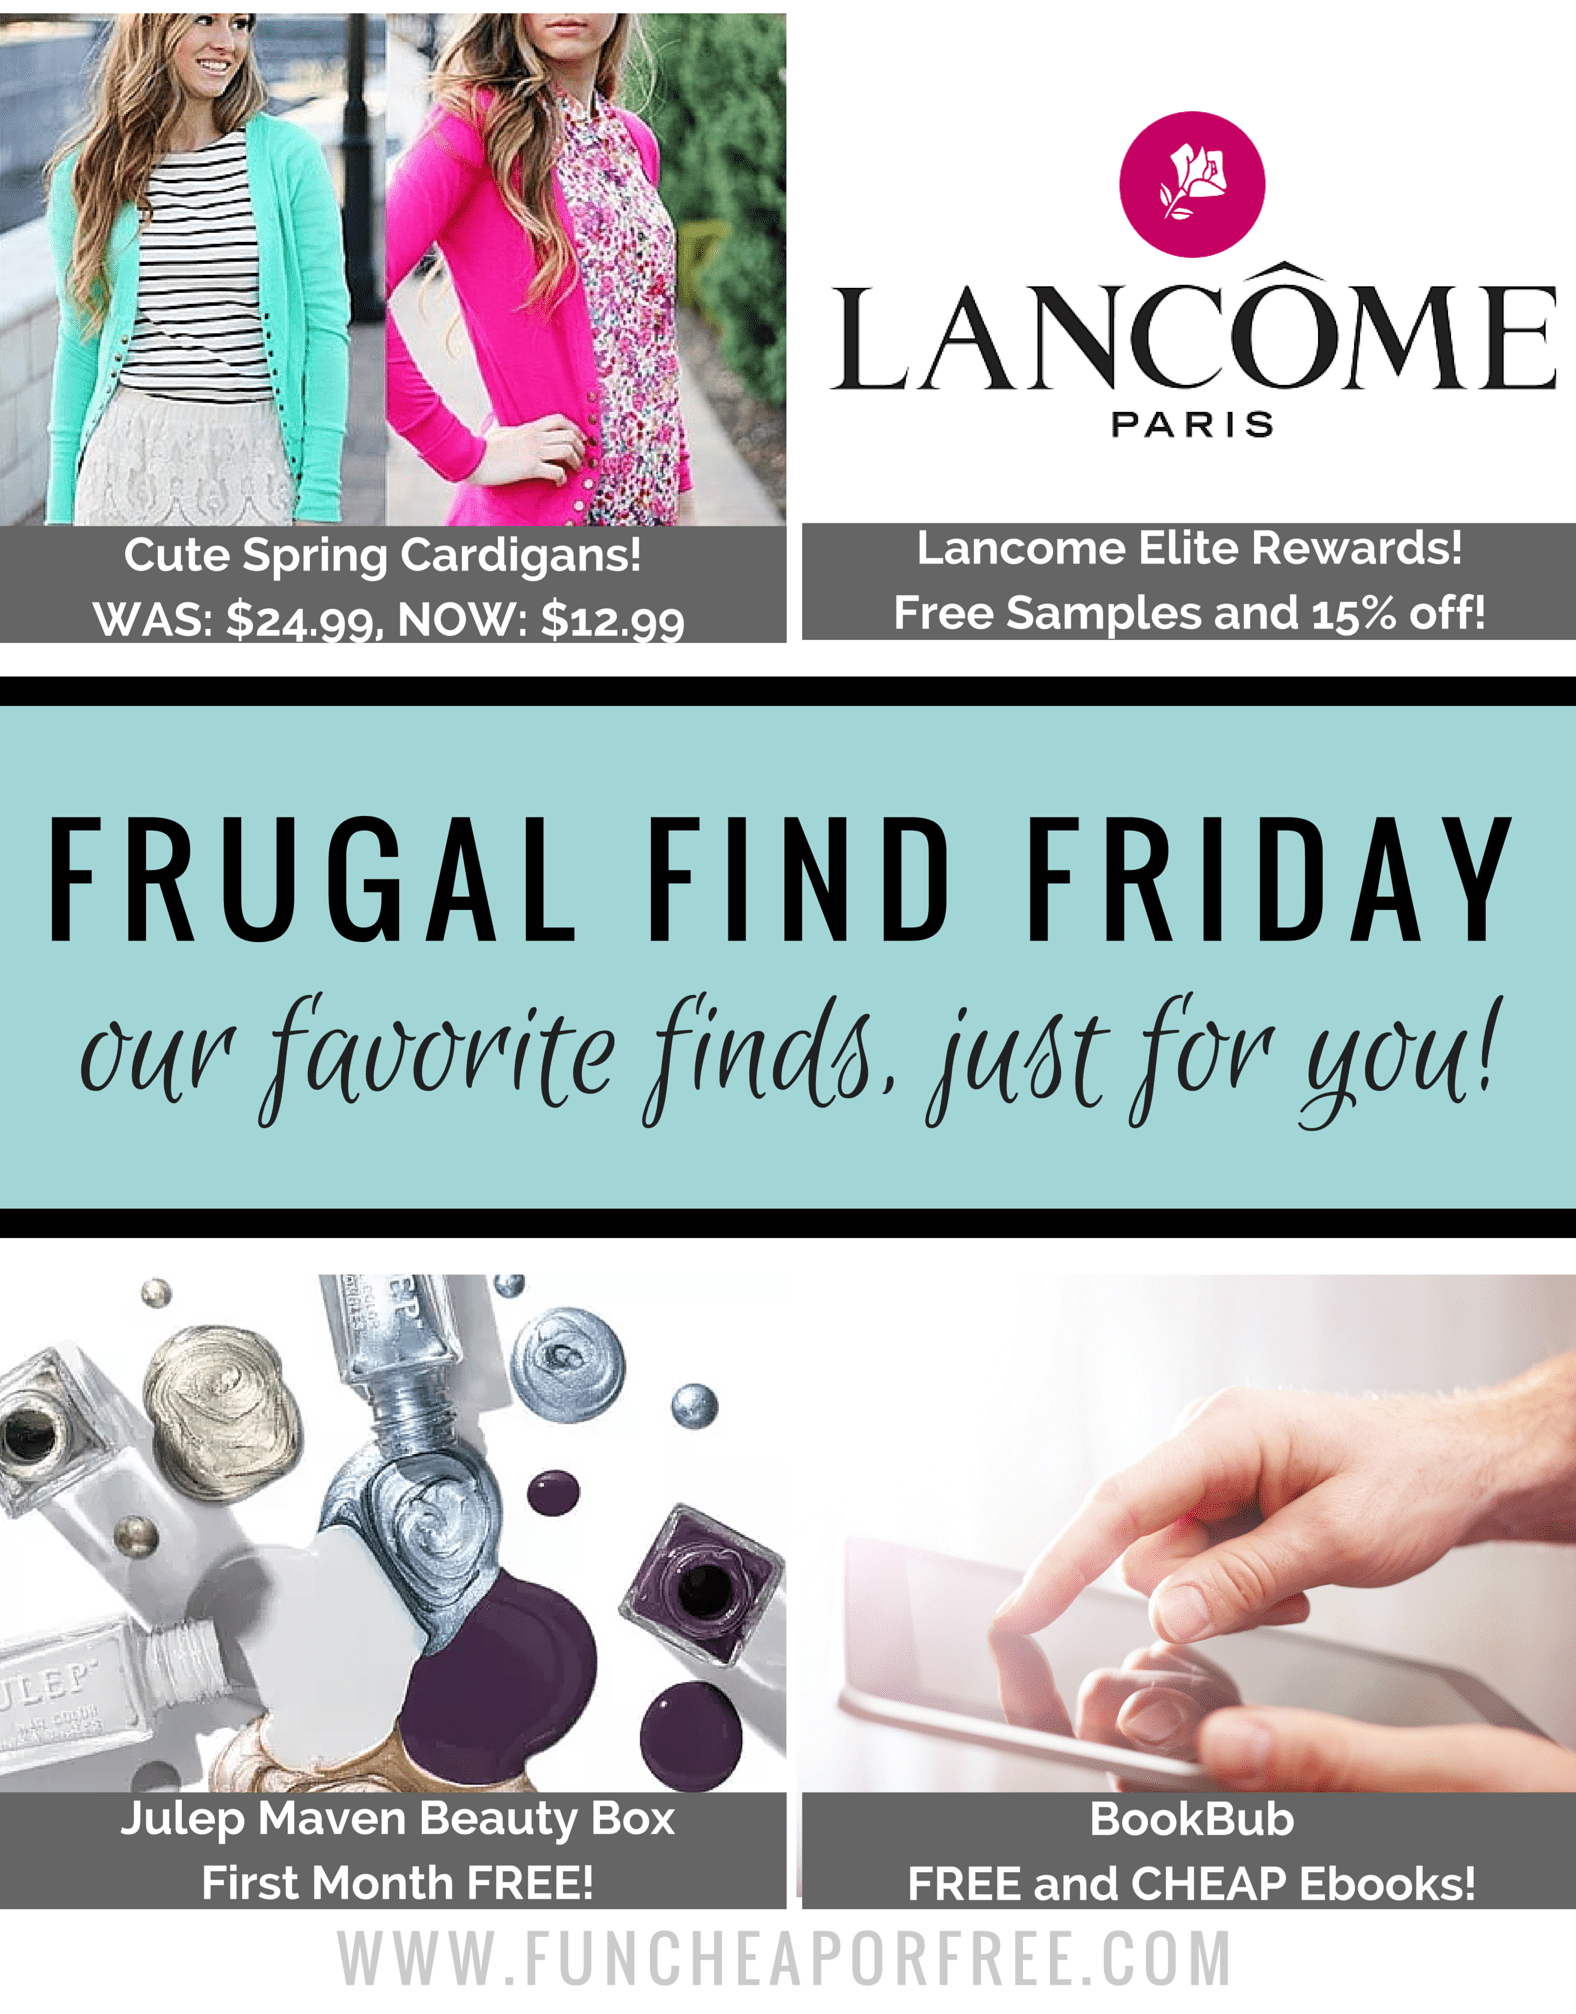 Frugal Finds for MOM! cute cardigans, BLISS at 75% off, FREE nail polish, and FREE e-books! www.FunCheapOrFree.com